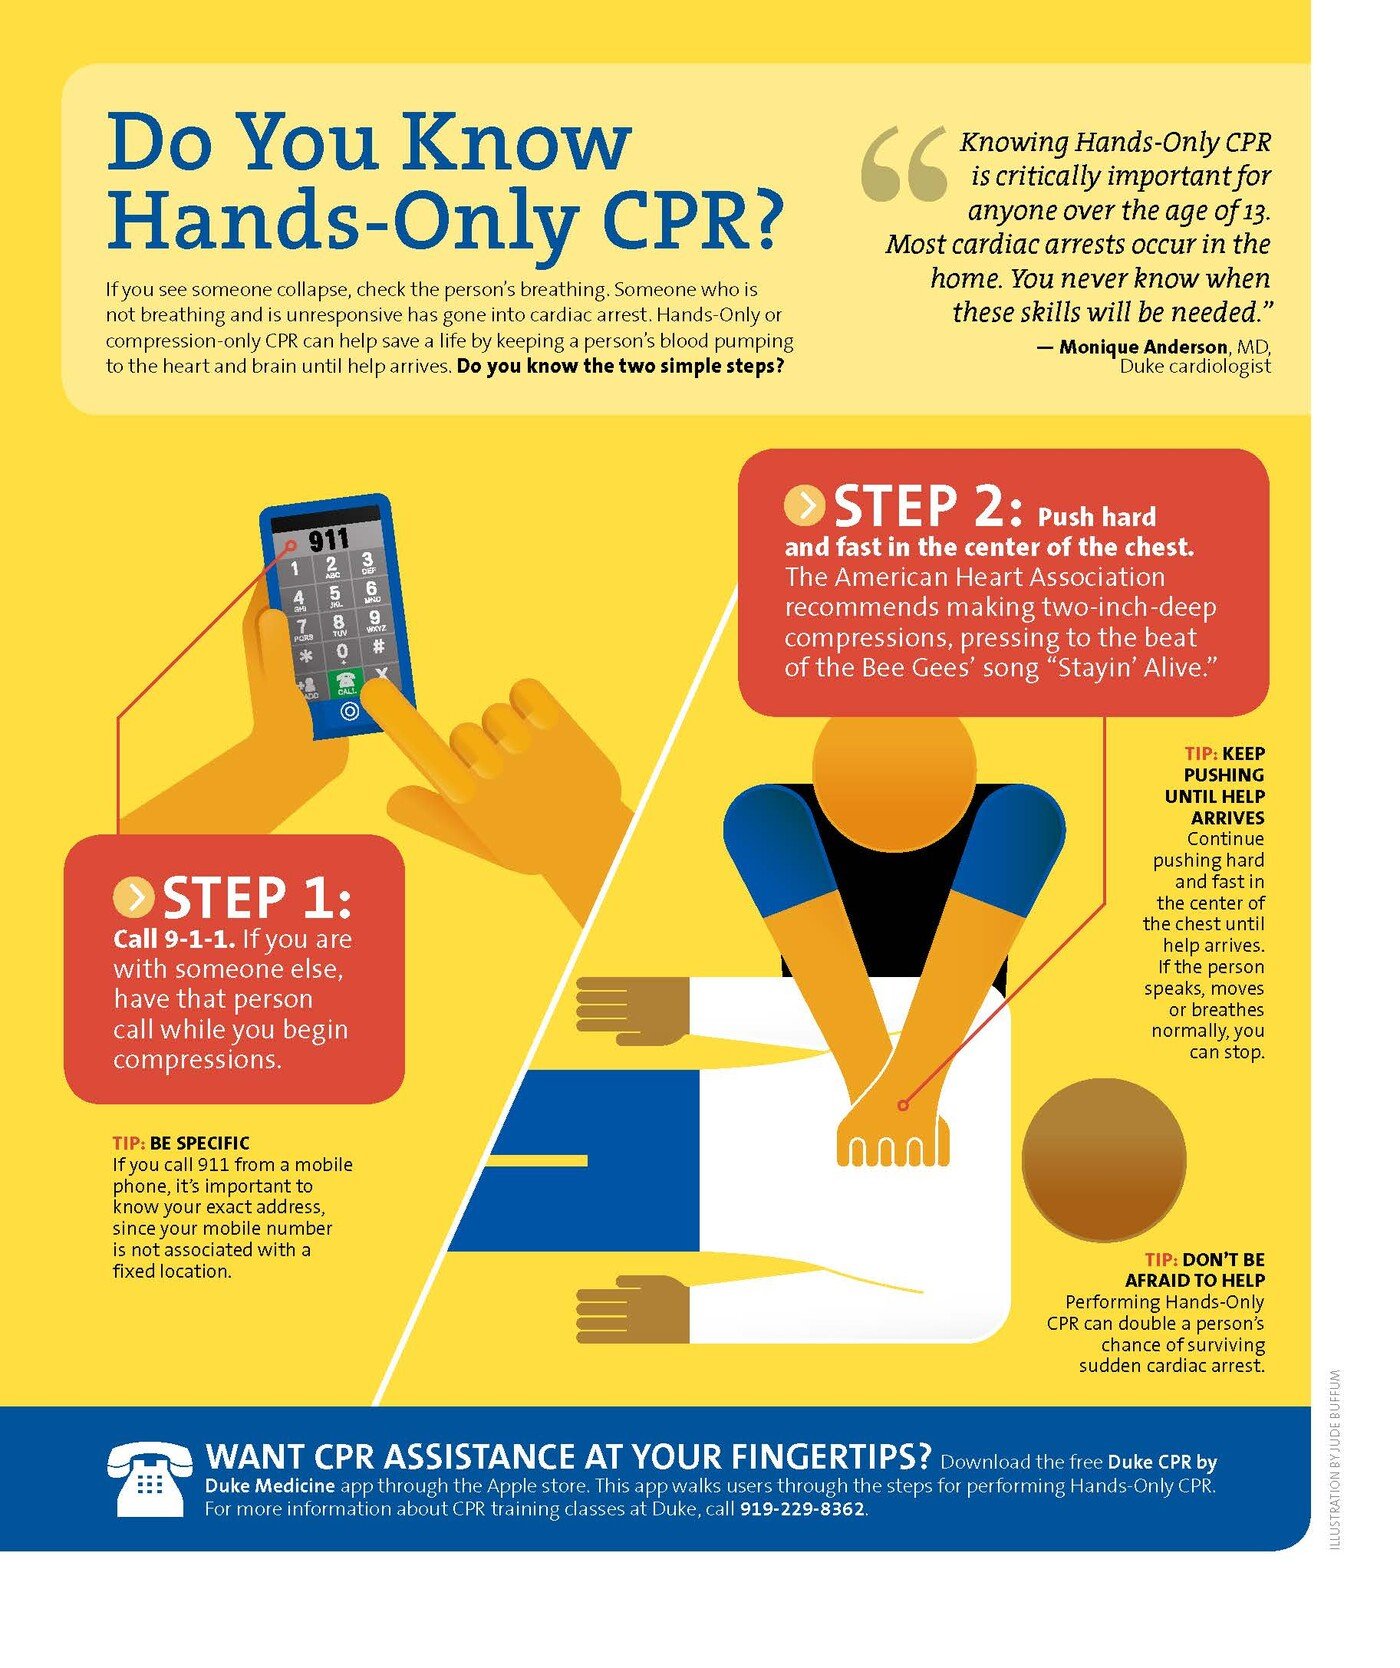 Learn hands-only CPR